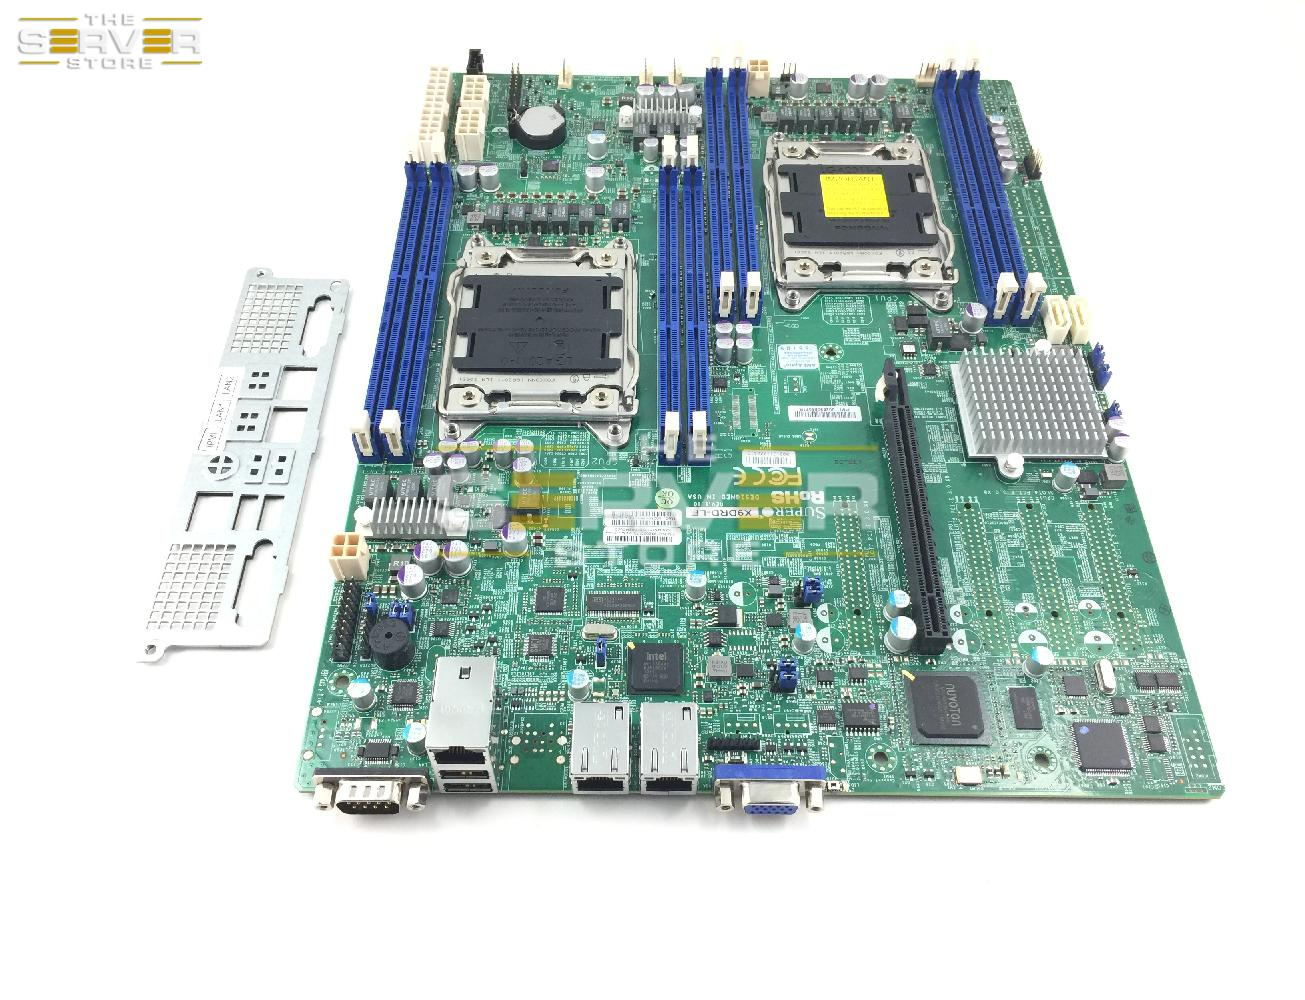 Supermicro X9DRD-LF Dual Socket LGA  2011 E-ATX Server System Board with I/O Plate